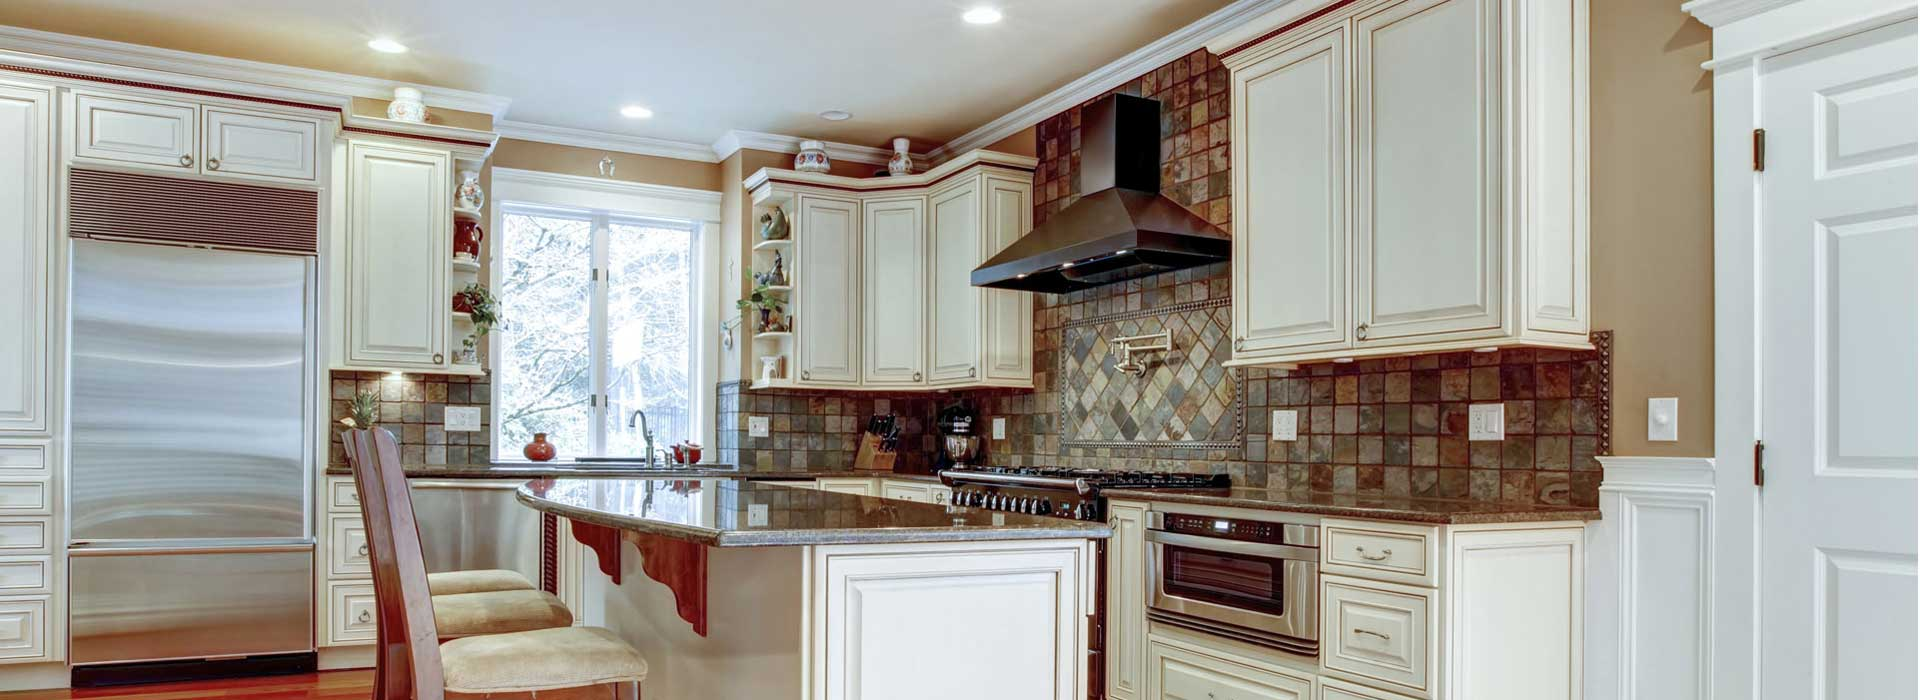 Kitchen Cabinets Queens Ny new look kitchen cabinet refacing » kitchen cabinet refacing queens ny